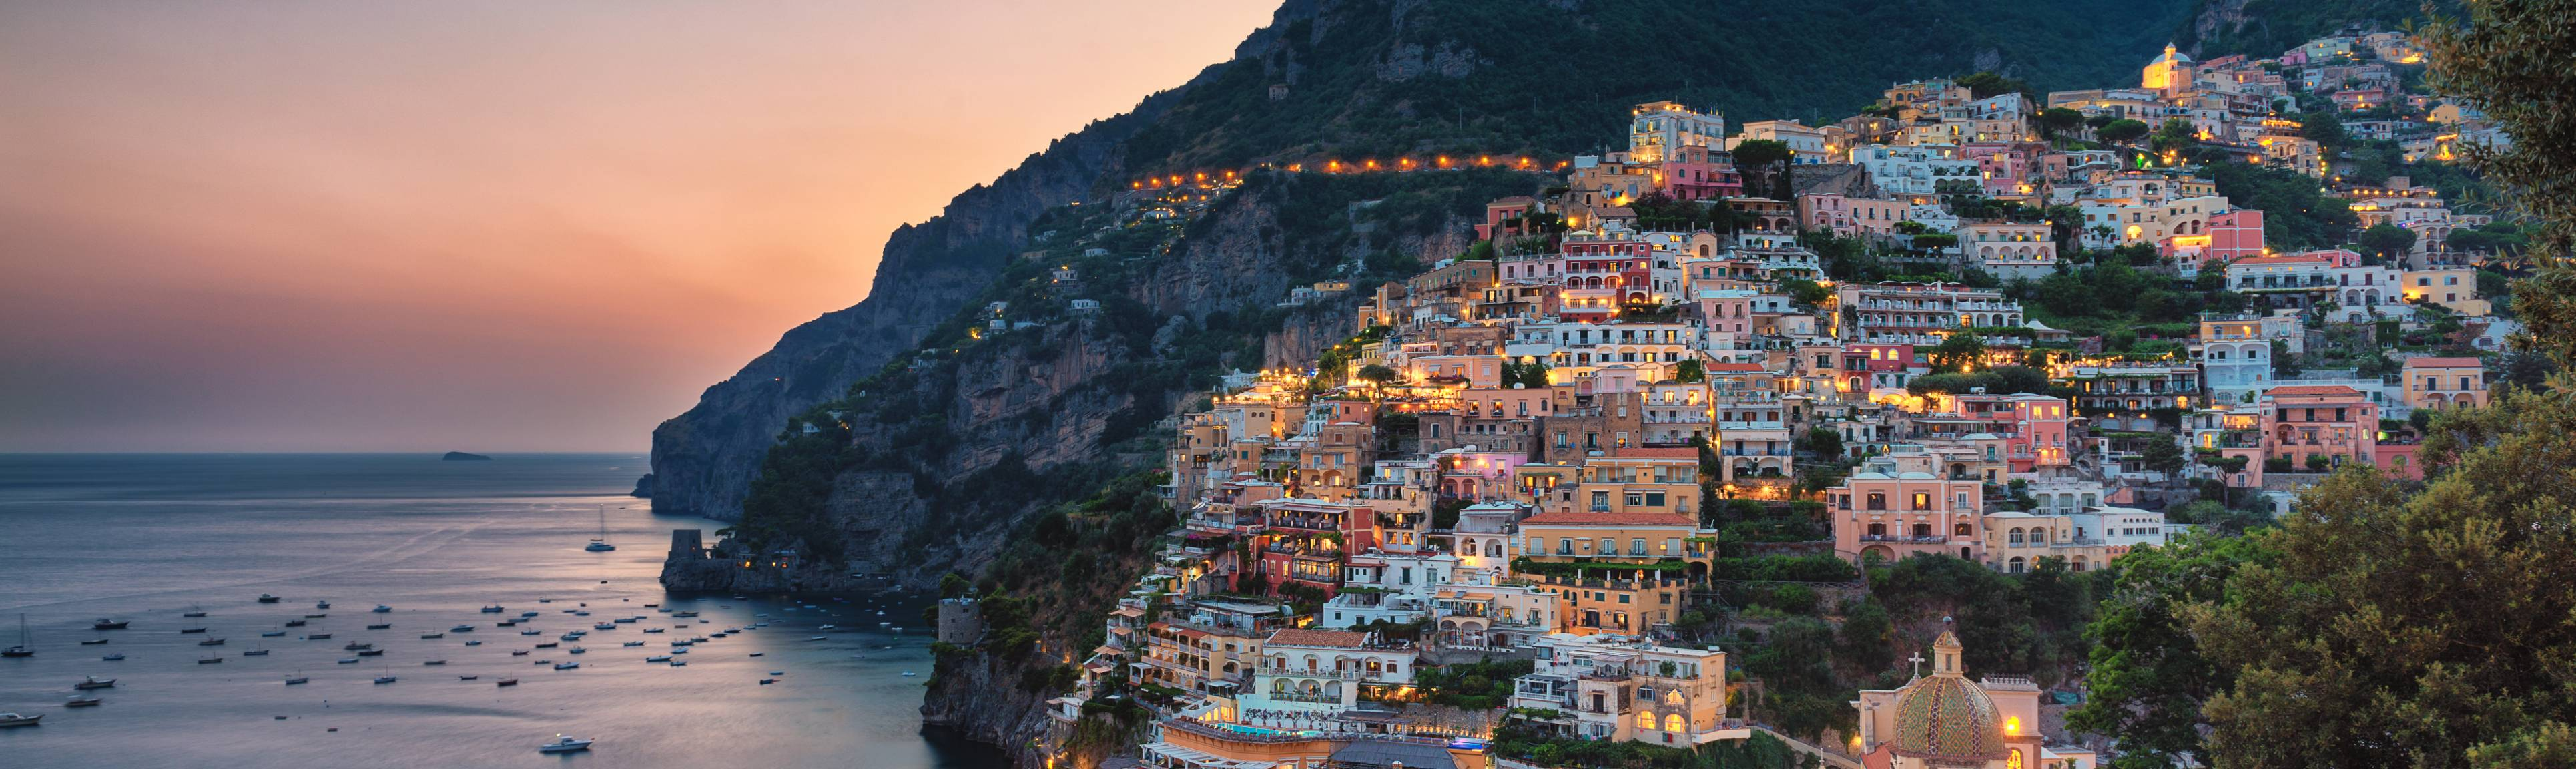 Sunset view of city of Positano on the Amalfi Coast